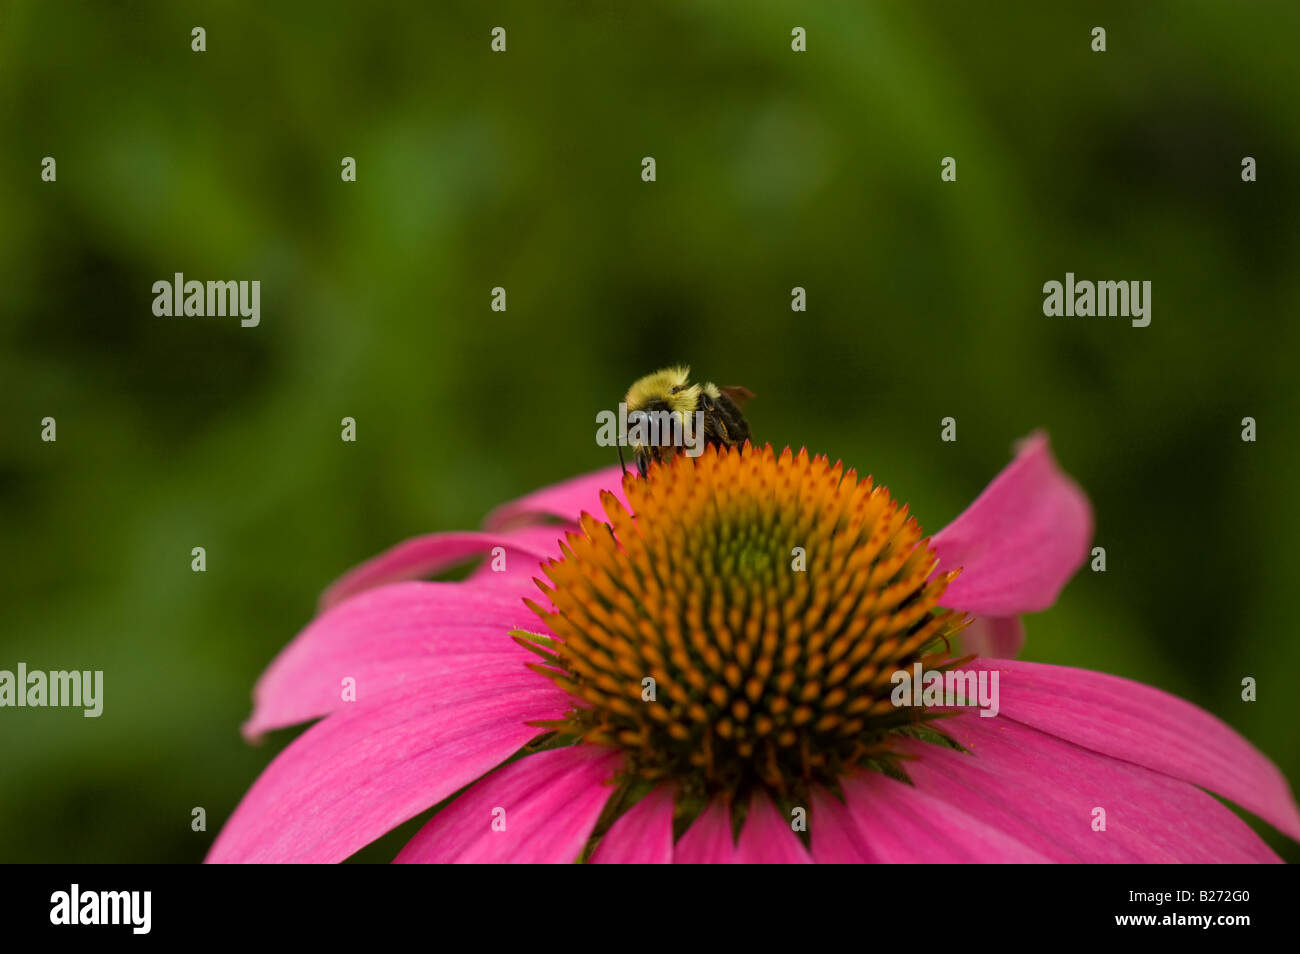 close-up-of-a-common-eastern-bumble-bee-